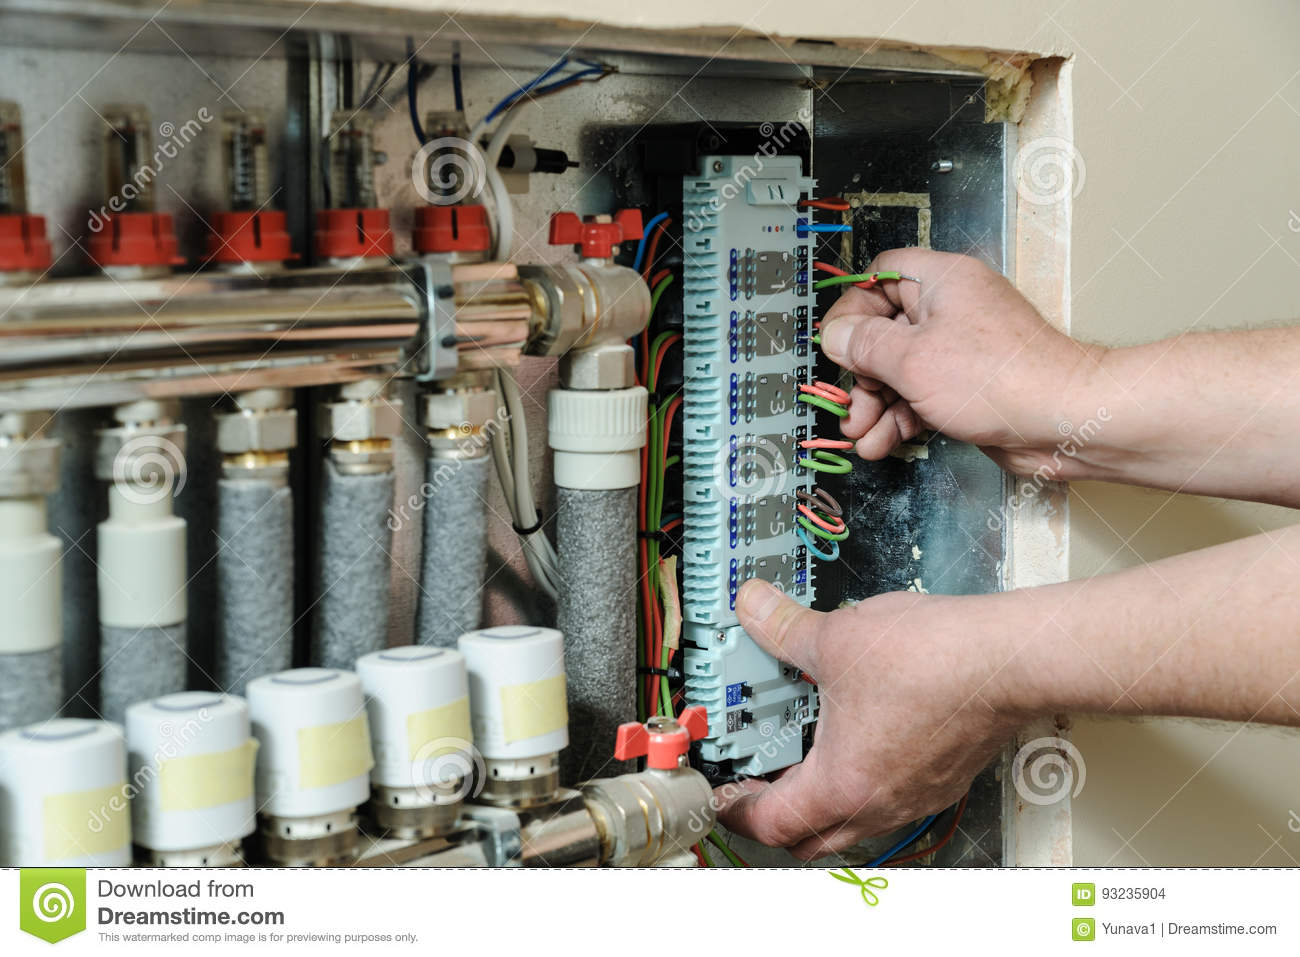 hight resolution of switching signal wires in the home s heating system control